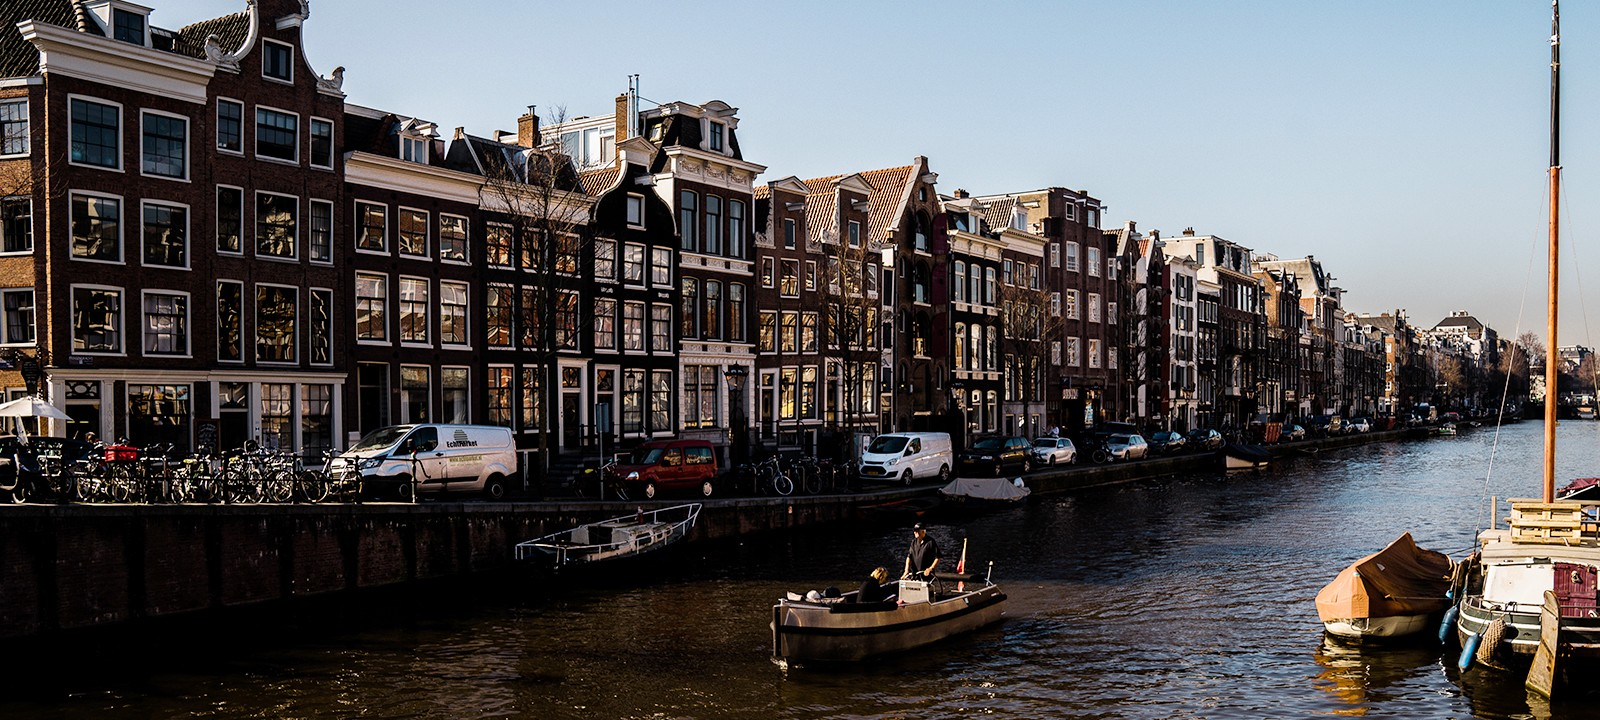 Amsterdam The Netherlands Dutch Canal Houses River Boats Scenery Travel